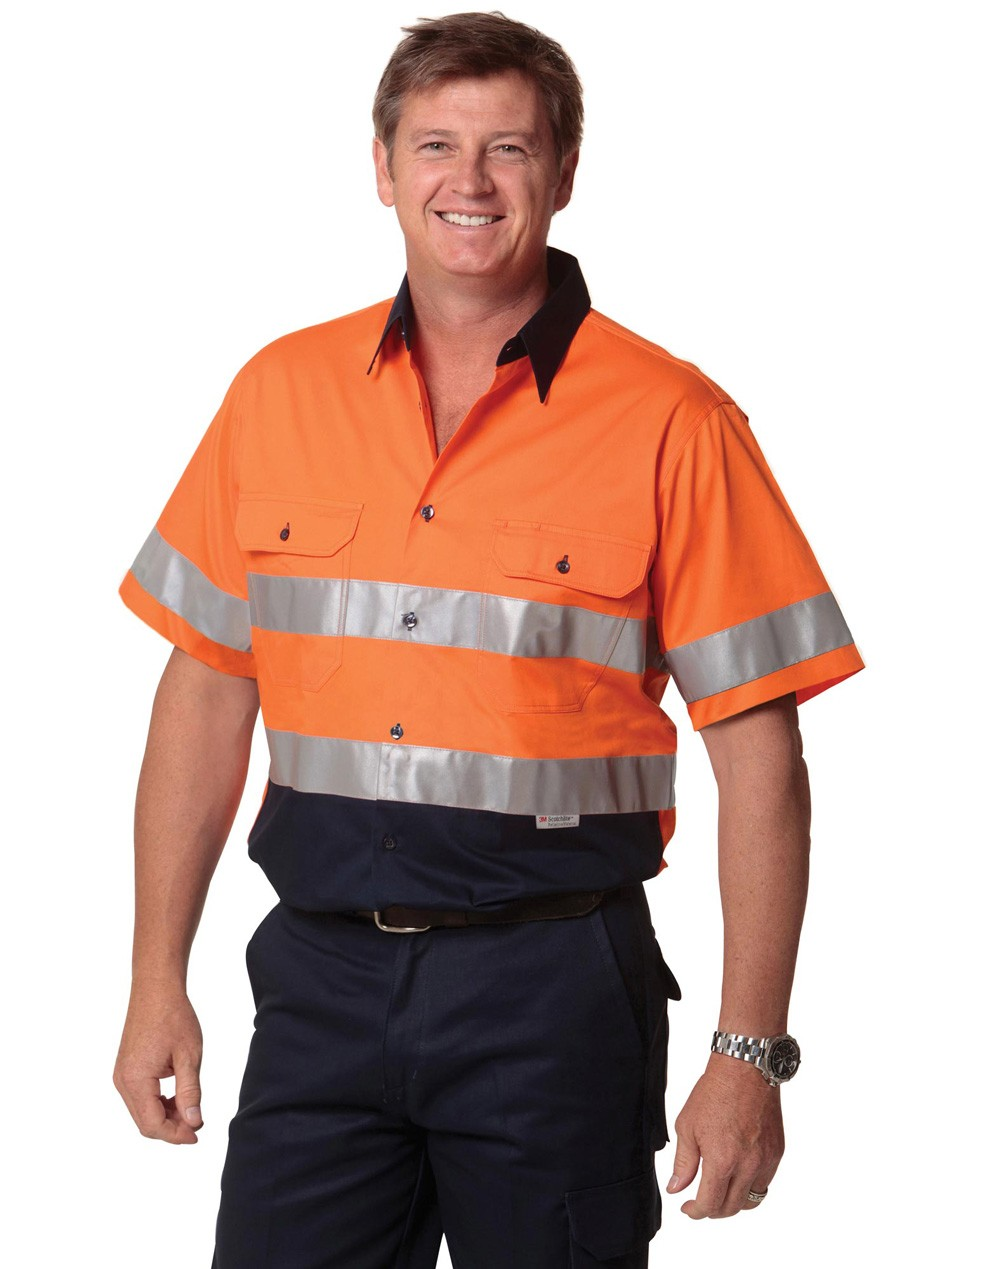 Winning Spirit Men's High Visibility Cool-Breeze Cotton Twill Short Sleeve Safety Shirt With Reflective 3M Tapes